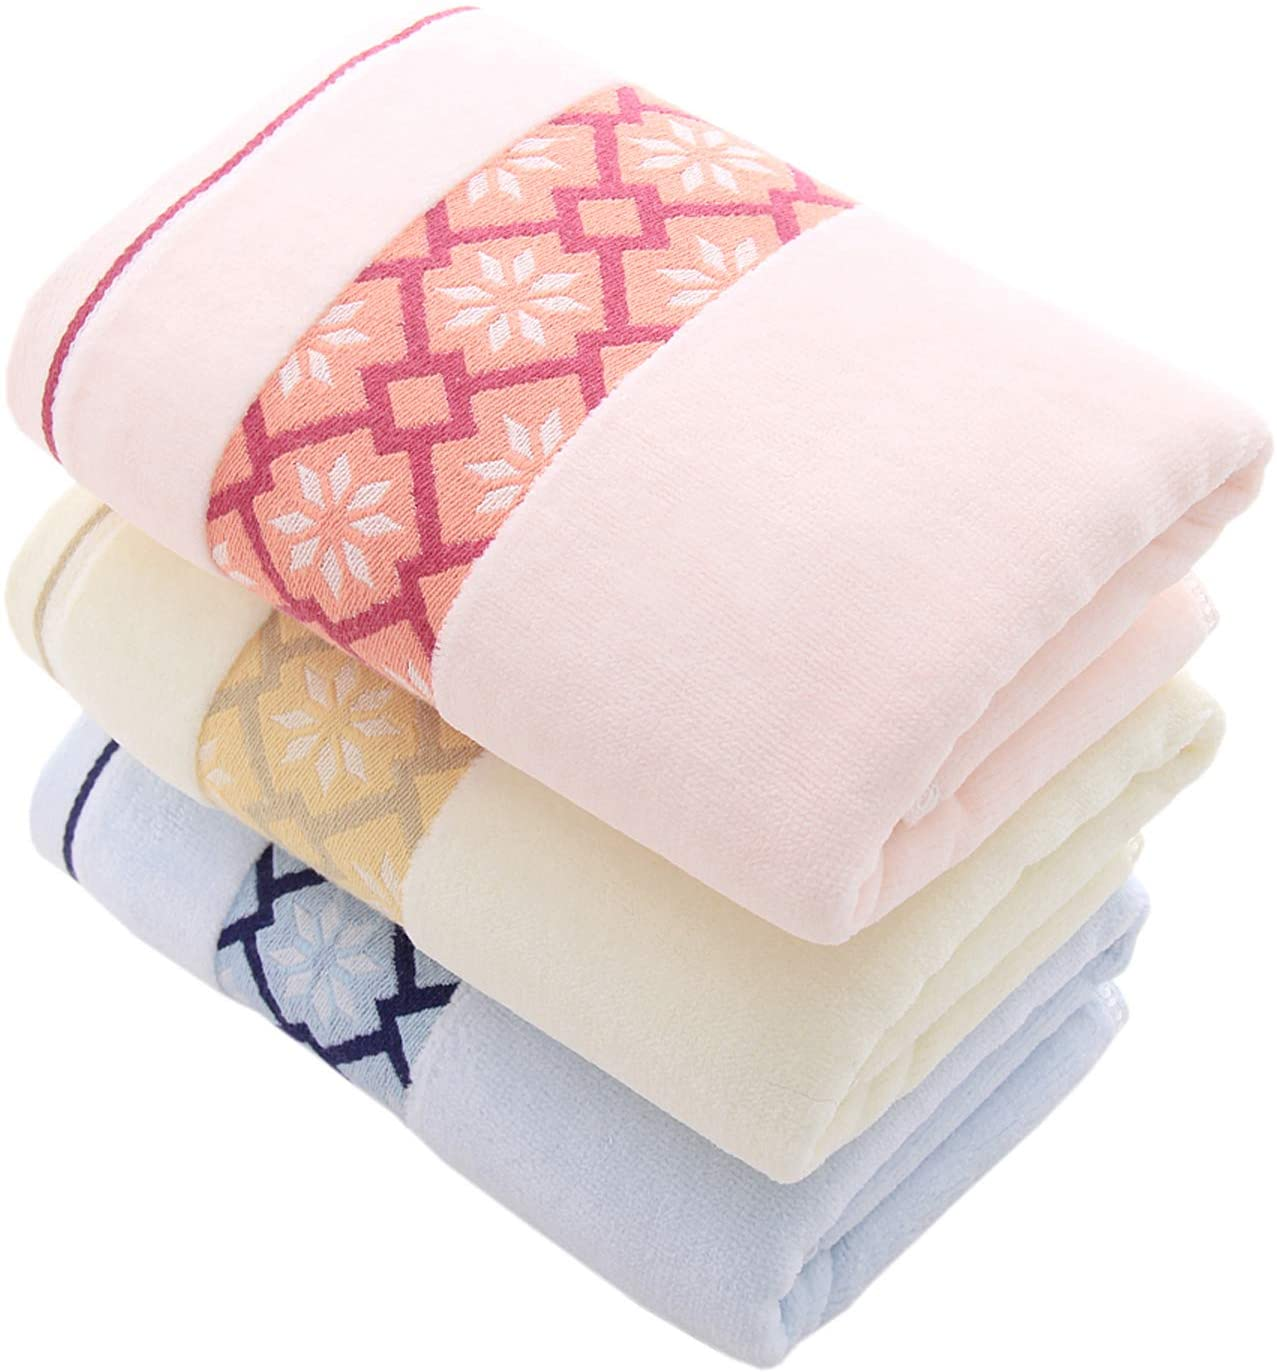 Hand Towels Set of 3 Diamond Pattern 100% Cotton Super Soft Highly Absorbent Hand Towels for Bathroom 14 x 29 Inch (3Colors)